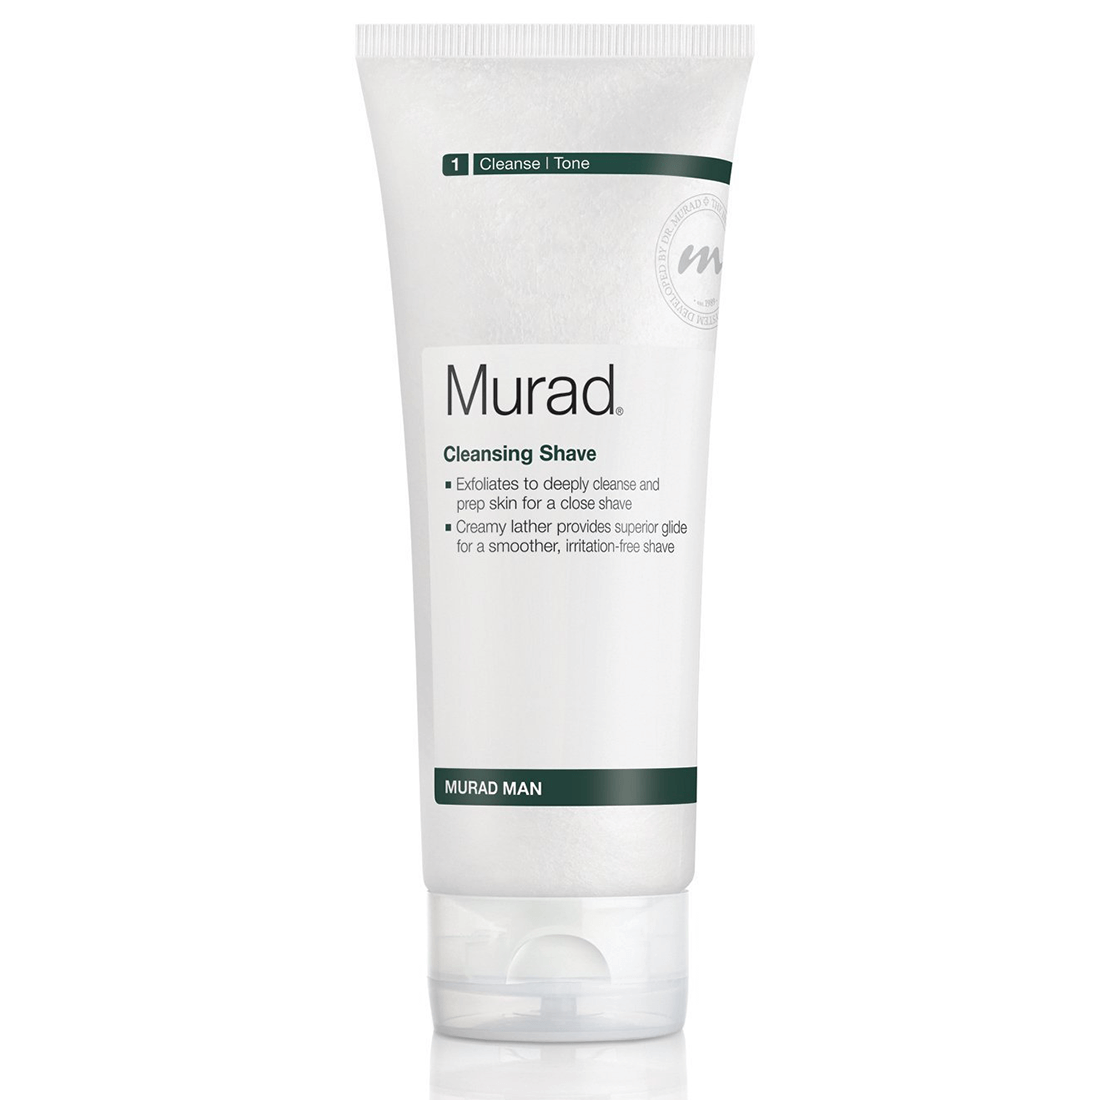 The best shaving cream for Razor Bump Avoidance - Murad Cleansing Shave